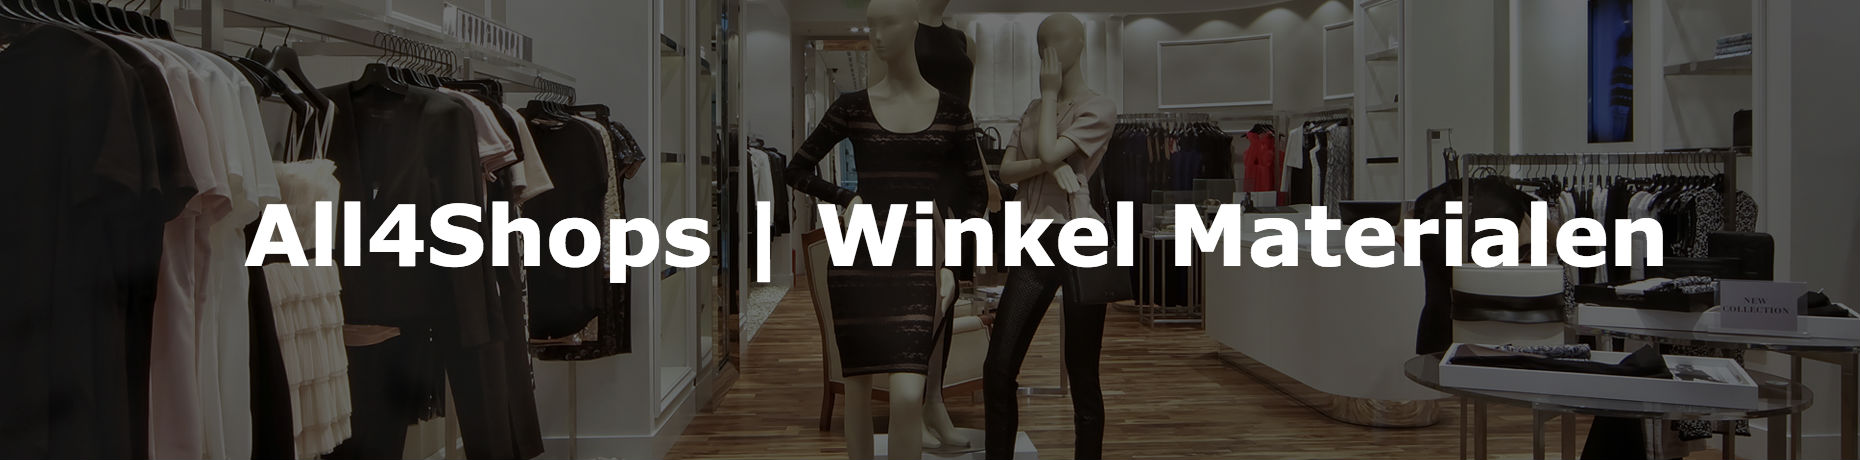 all4shops | winkel materialen